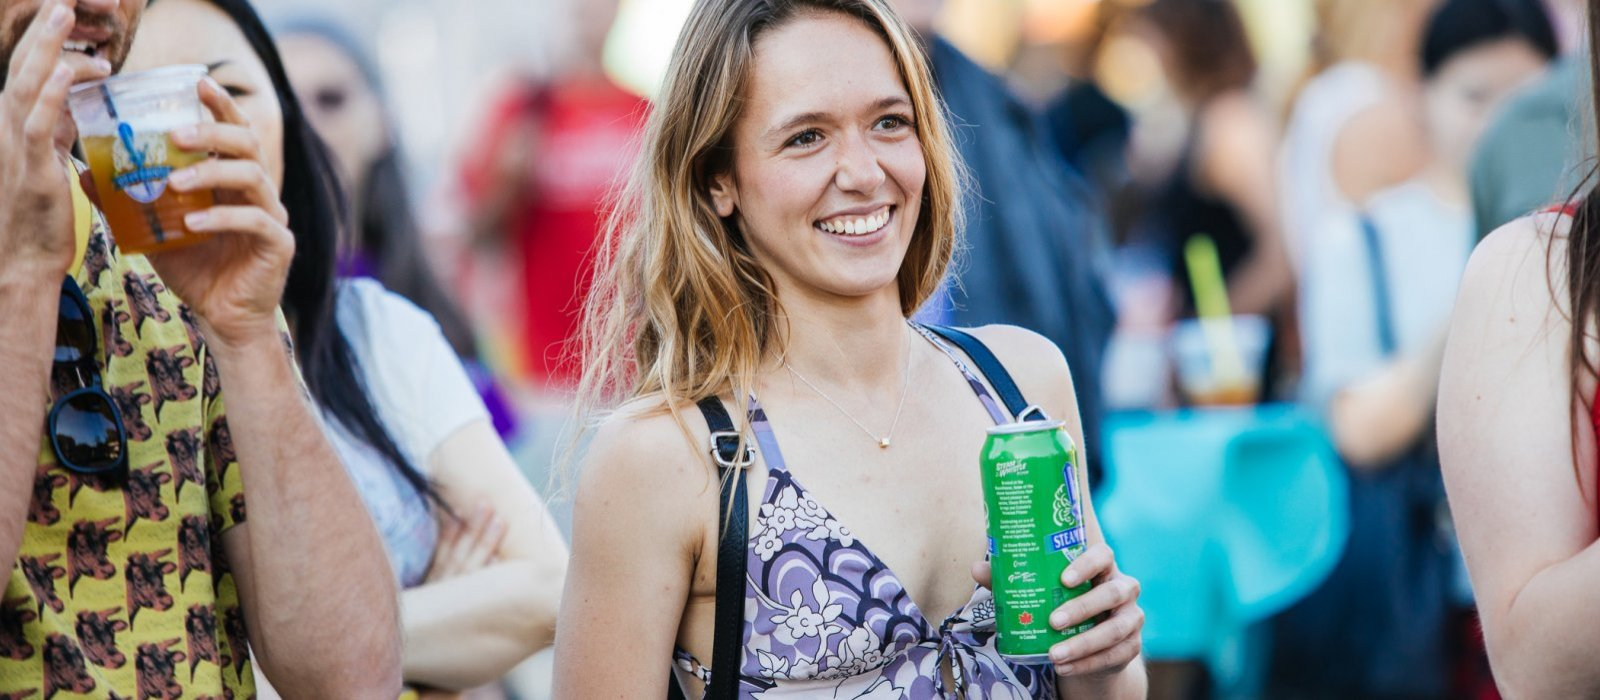 A young woman enjoys a Steam Whistle beer at the patio